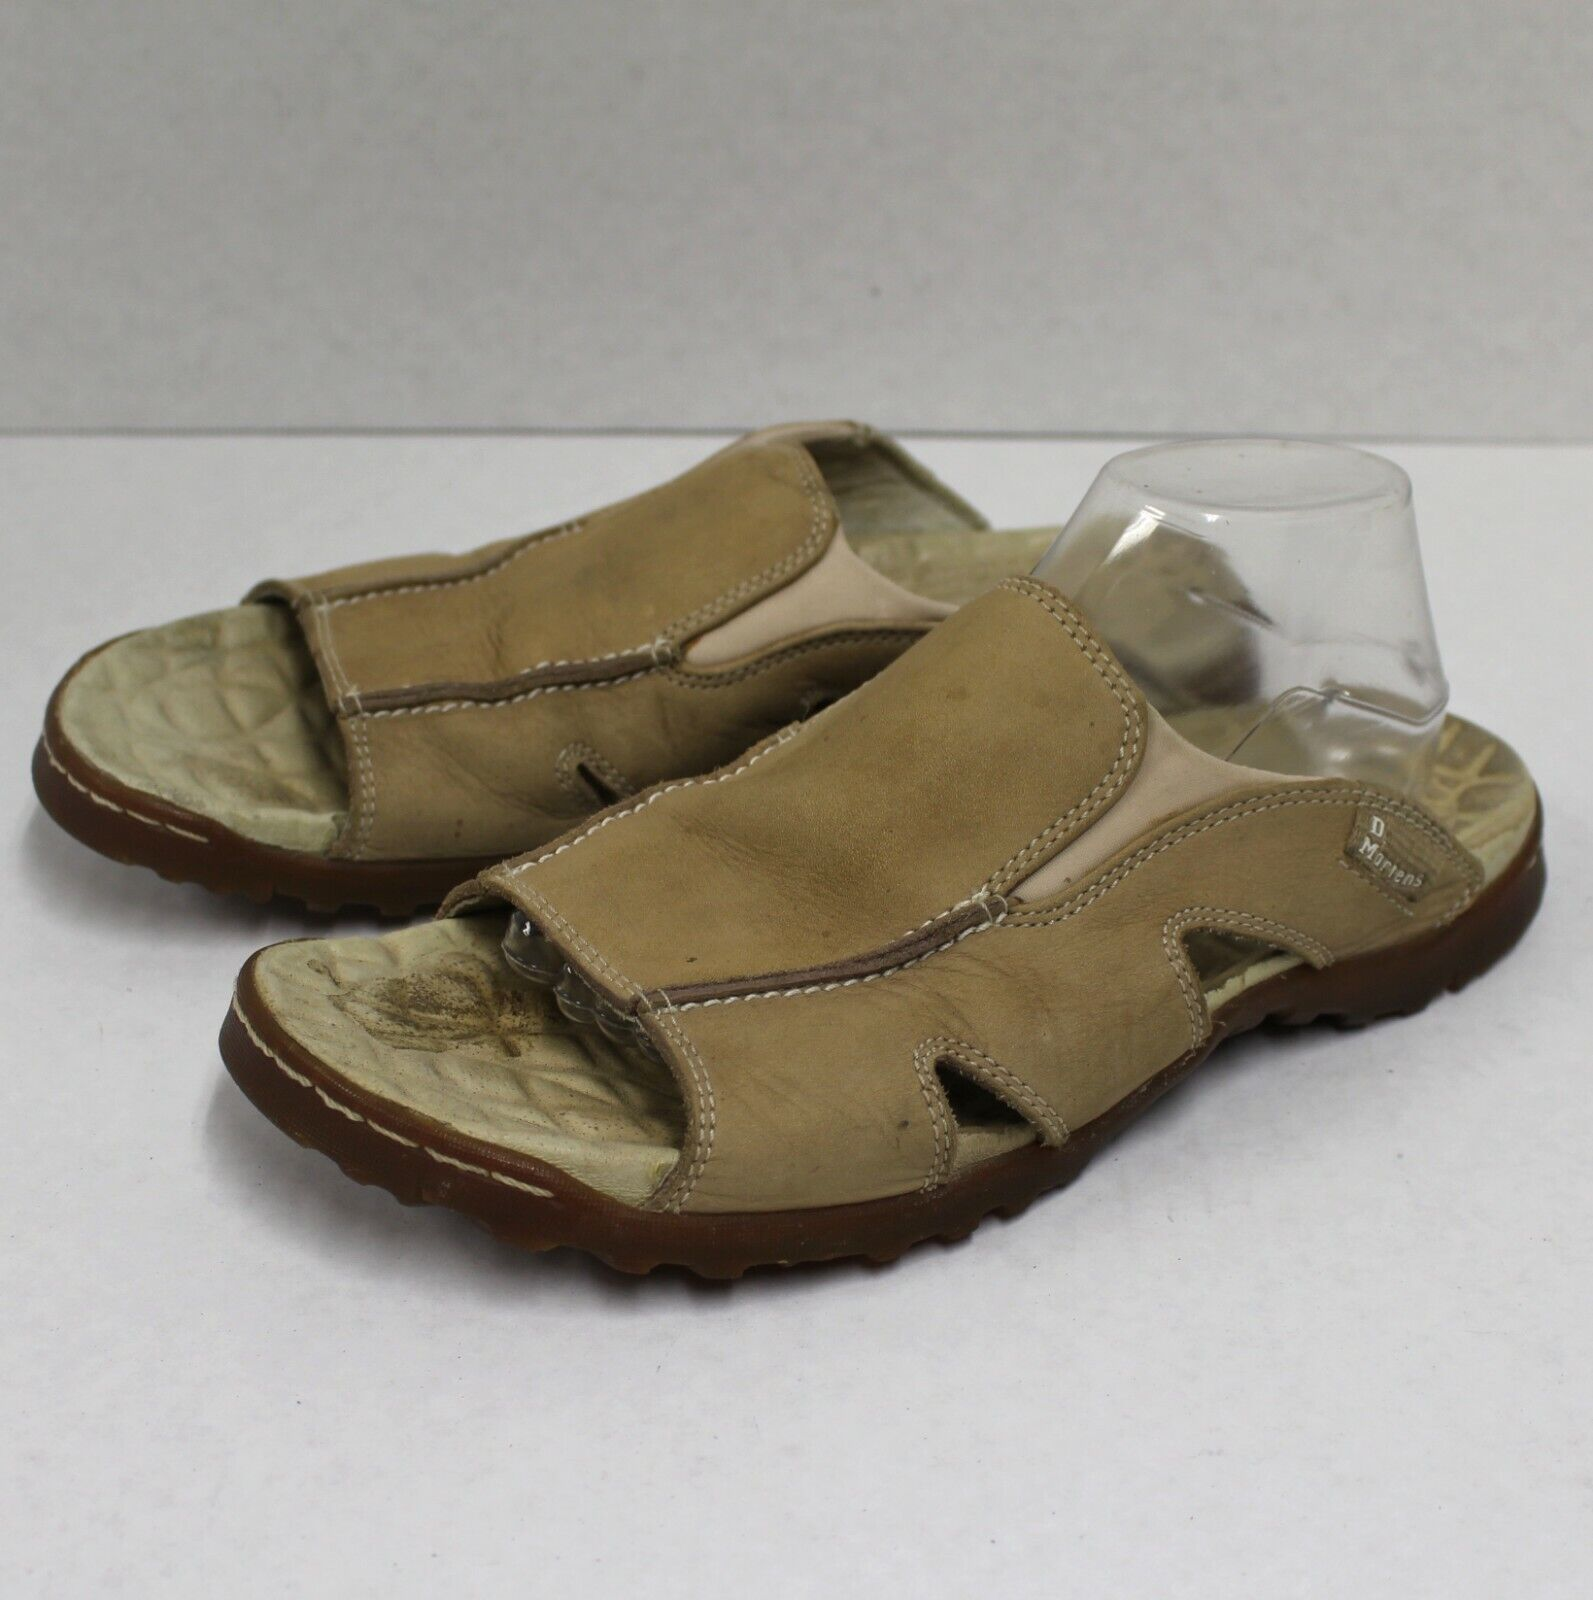 3736 Dr. Martens Men 11 Flats Flip Flops Leather Beige Air Cushion Sole shoes